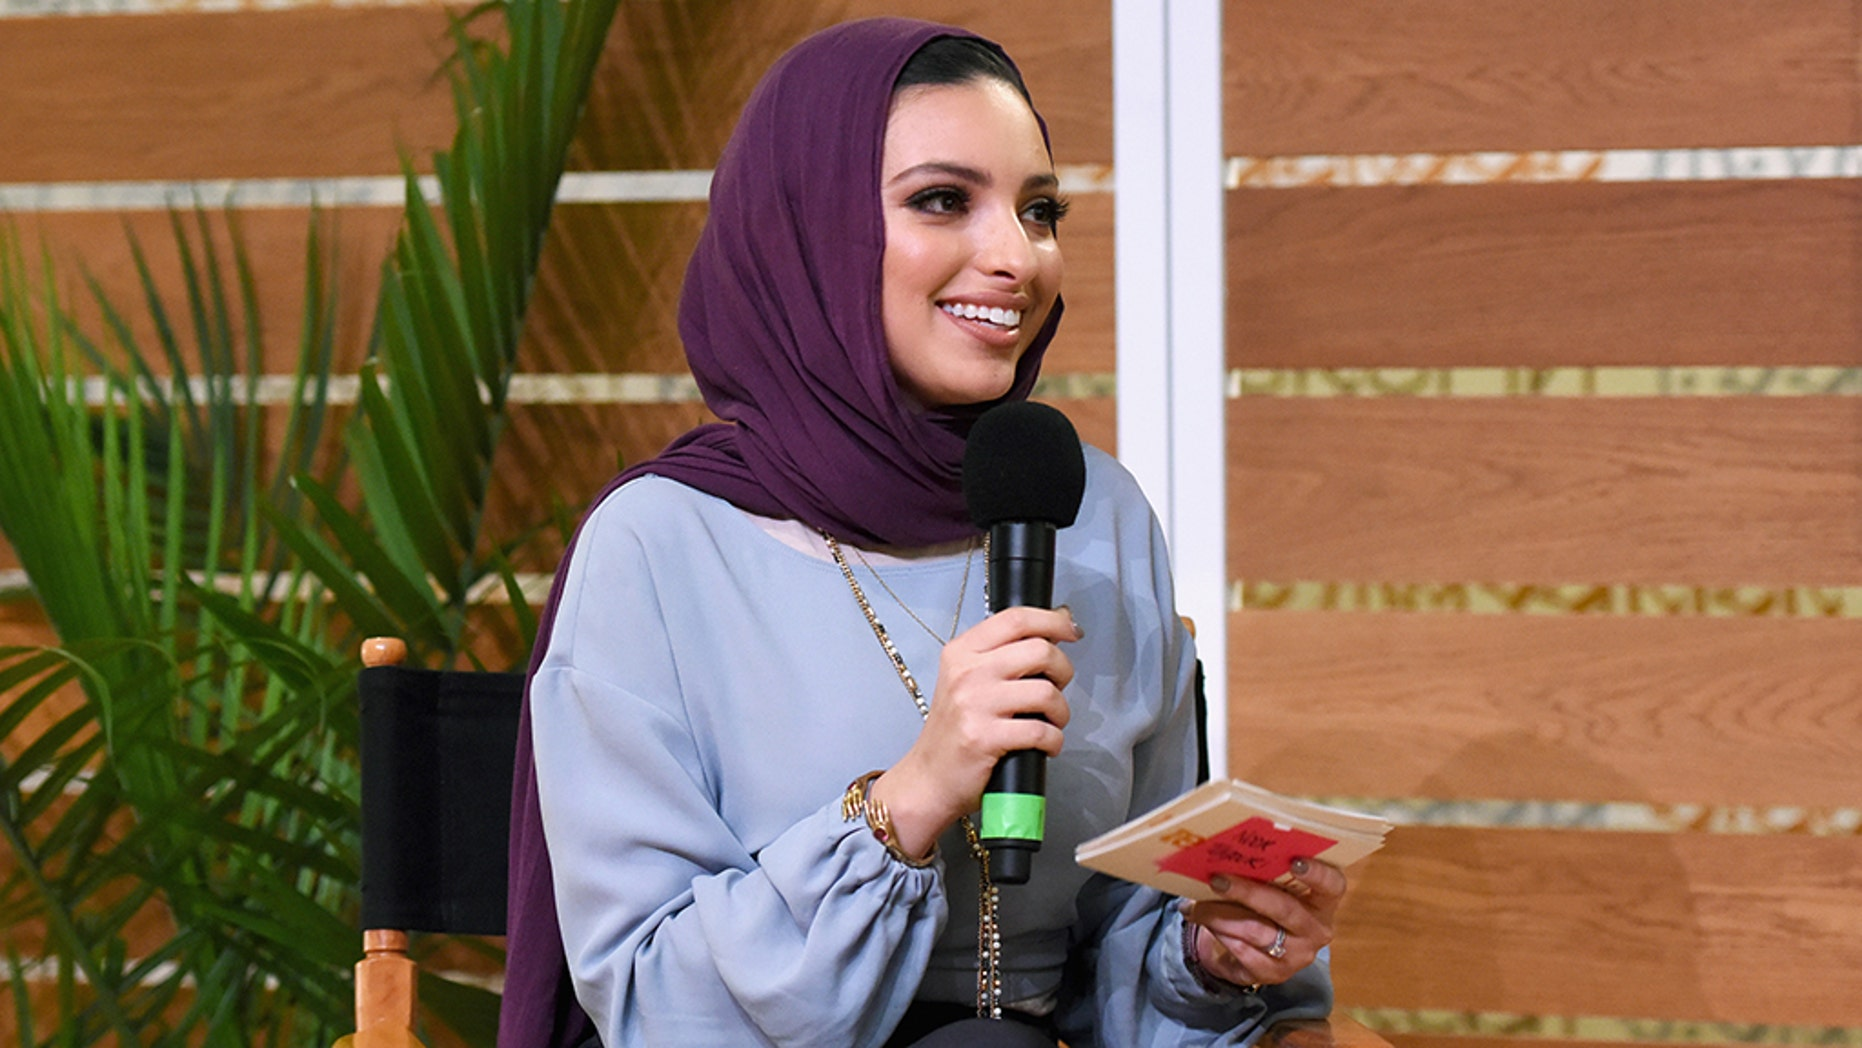 Noor Tagouri speaks onstage during The Change Agents keynote at The Teen Vogue Summit 2018. (Photo by Vivien Killilea/Getty Images for Teen Vogue)